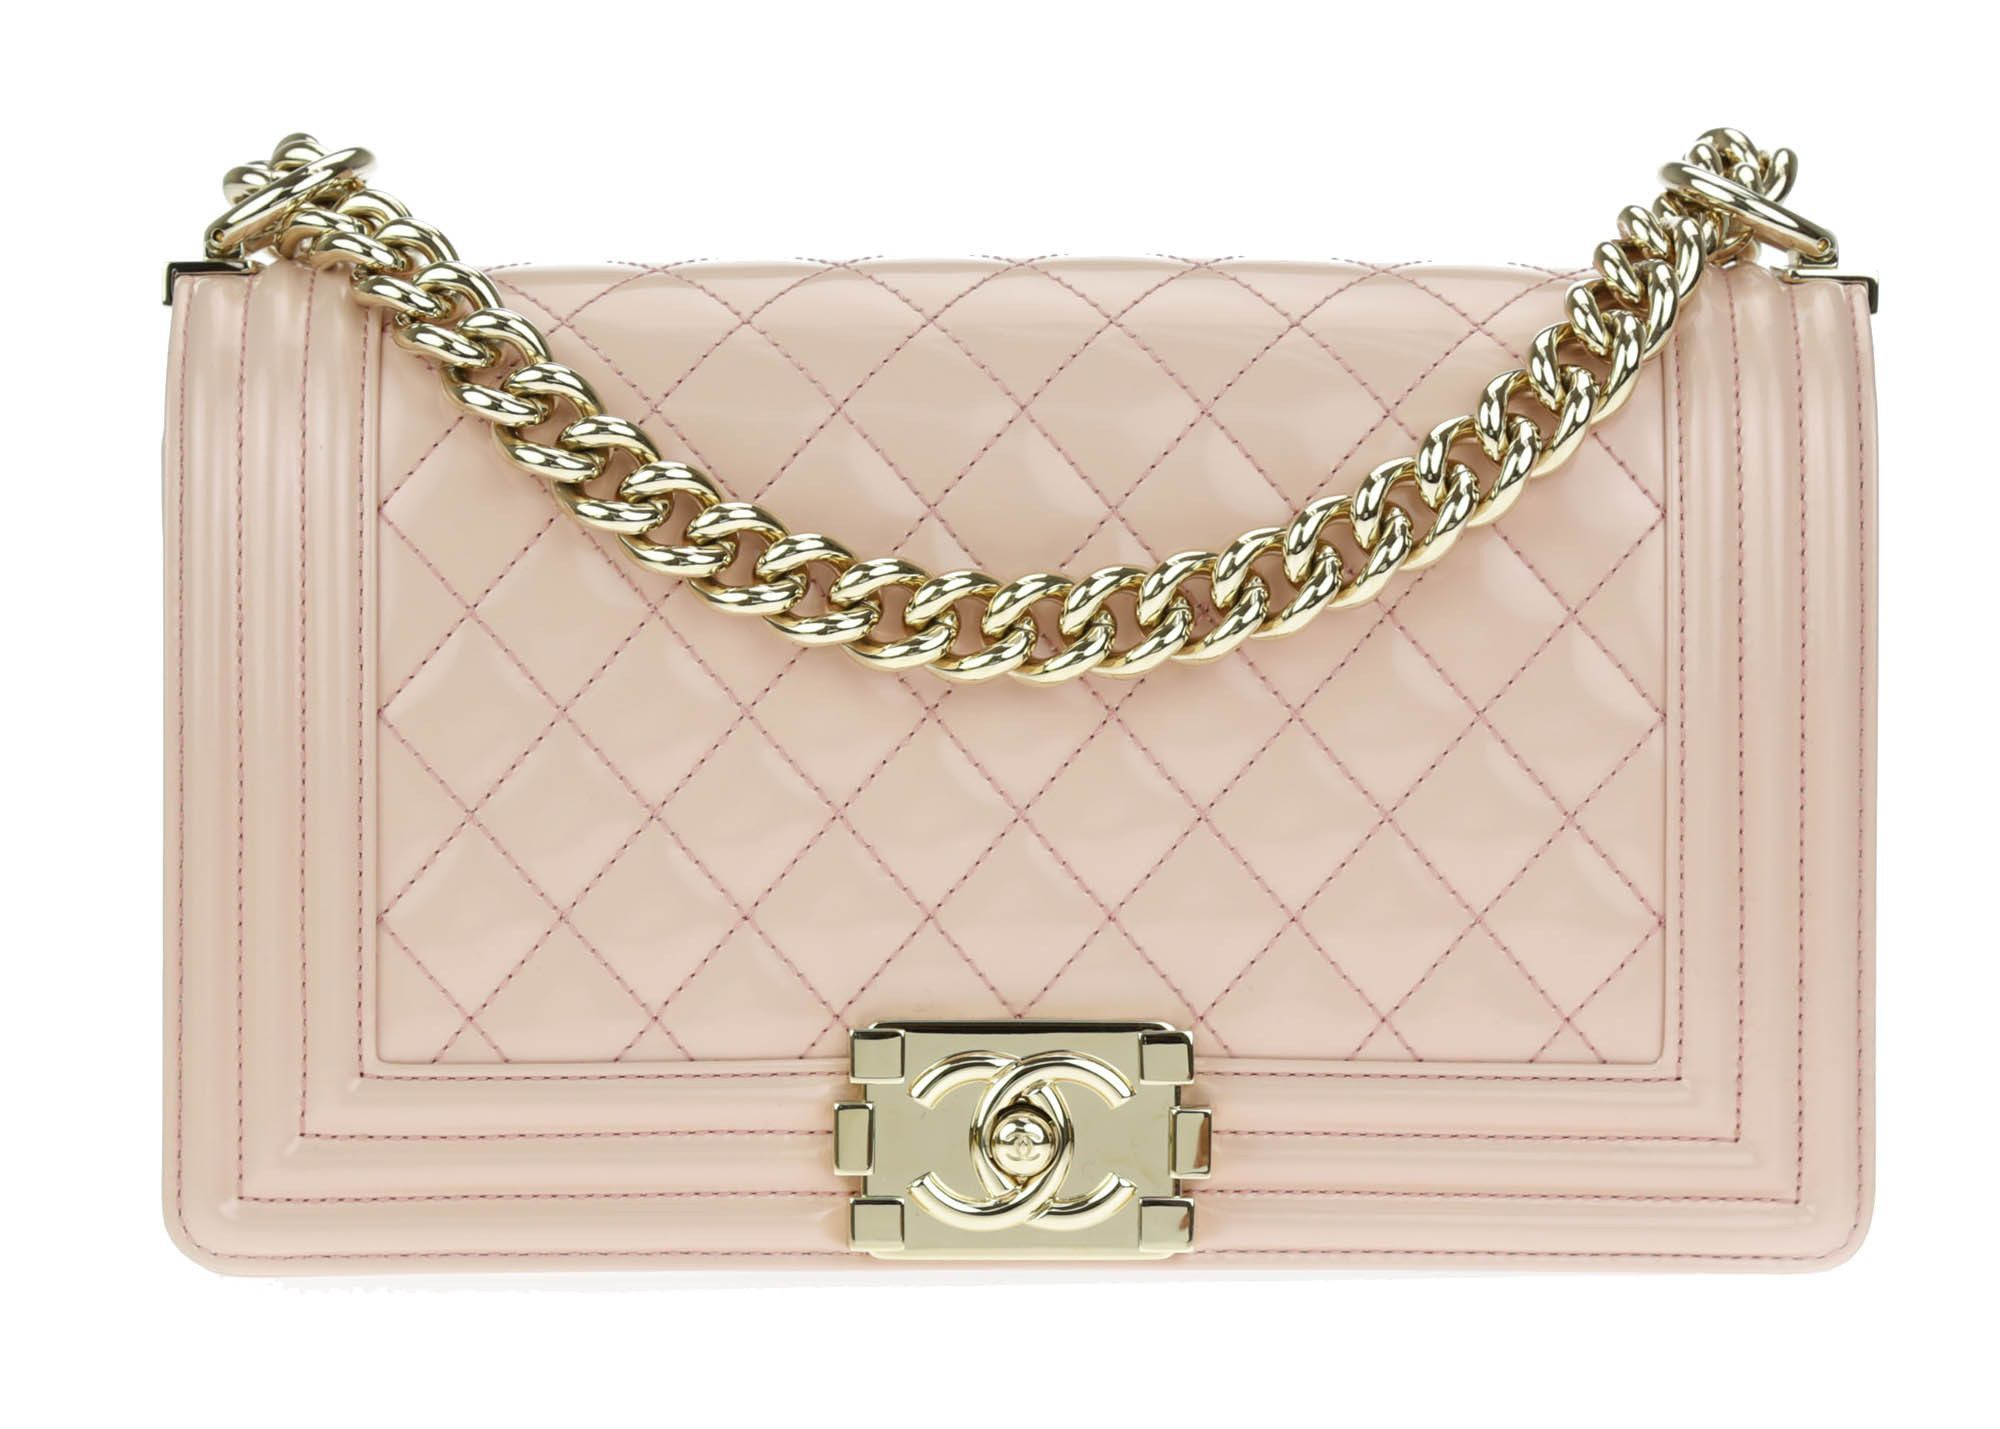 fce08a7a3dff Chanel Light Pink Patent Leather Medium Boy Bag | Couture | Patent ...